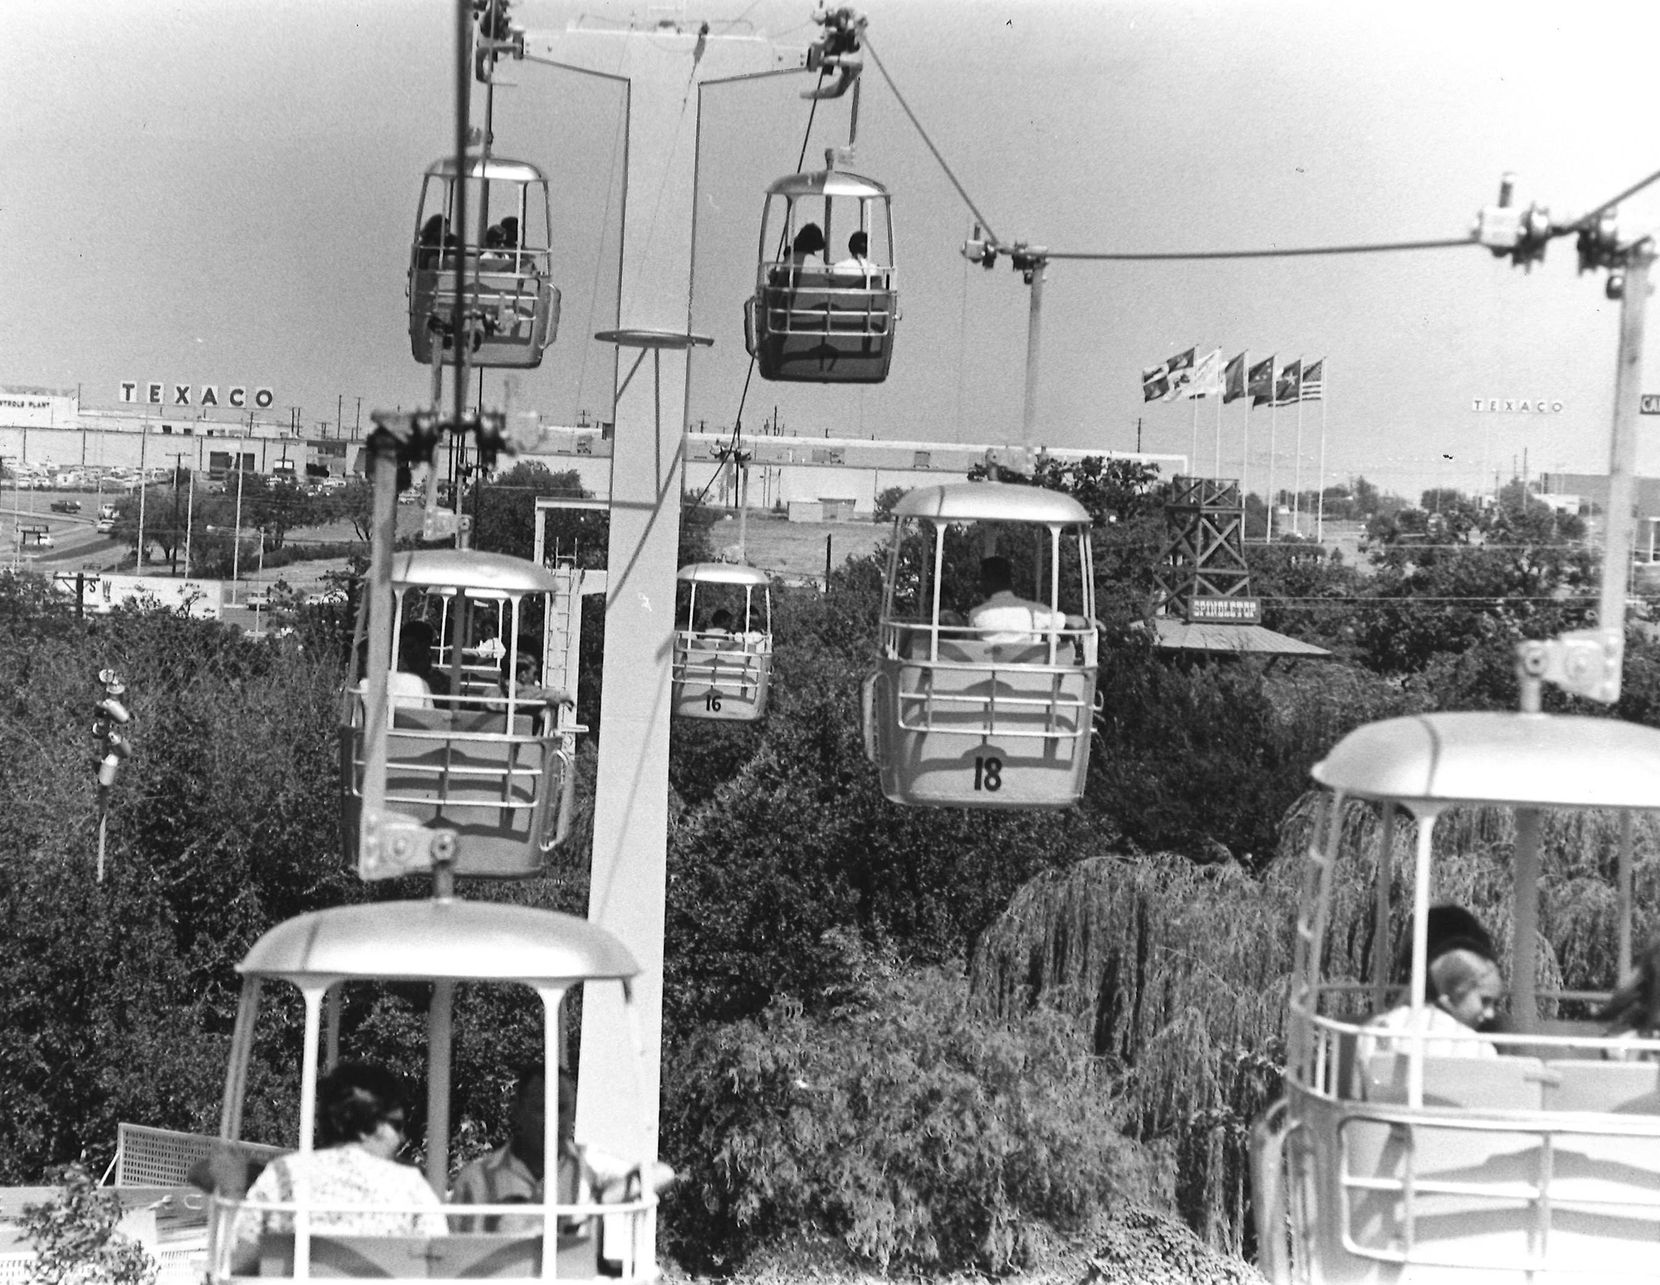 The futuristic Astrolift was one of the original rides at Six Flags in 1961 but was removed in 1980 due to expensive repair needs and decreased ridership among other factors.